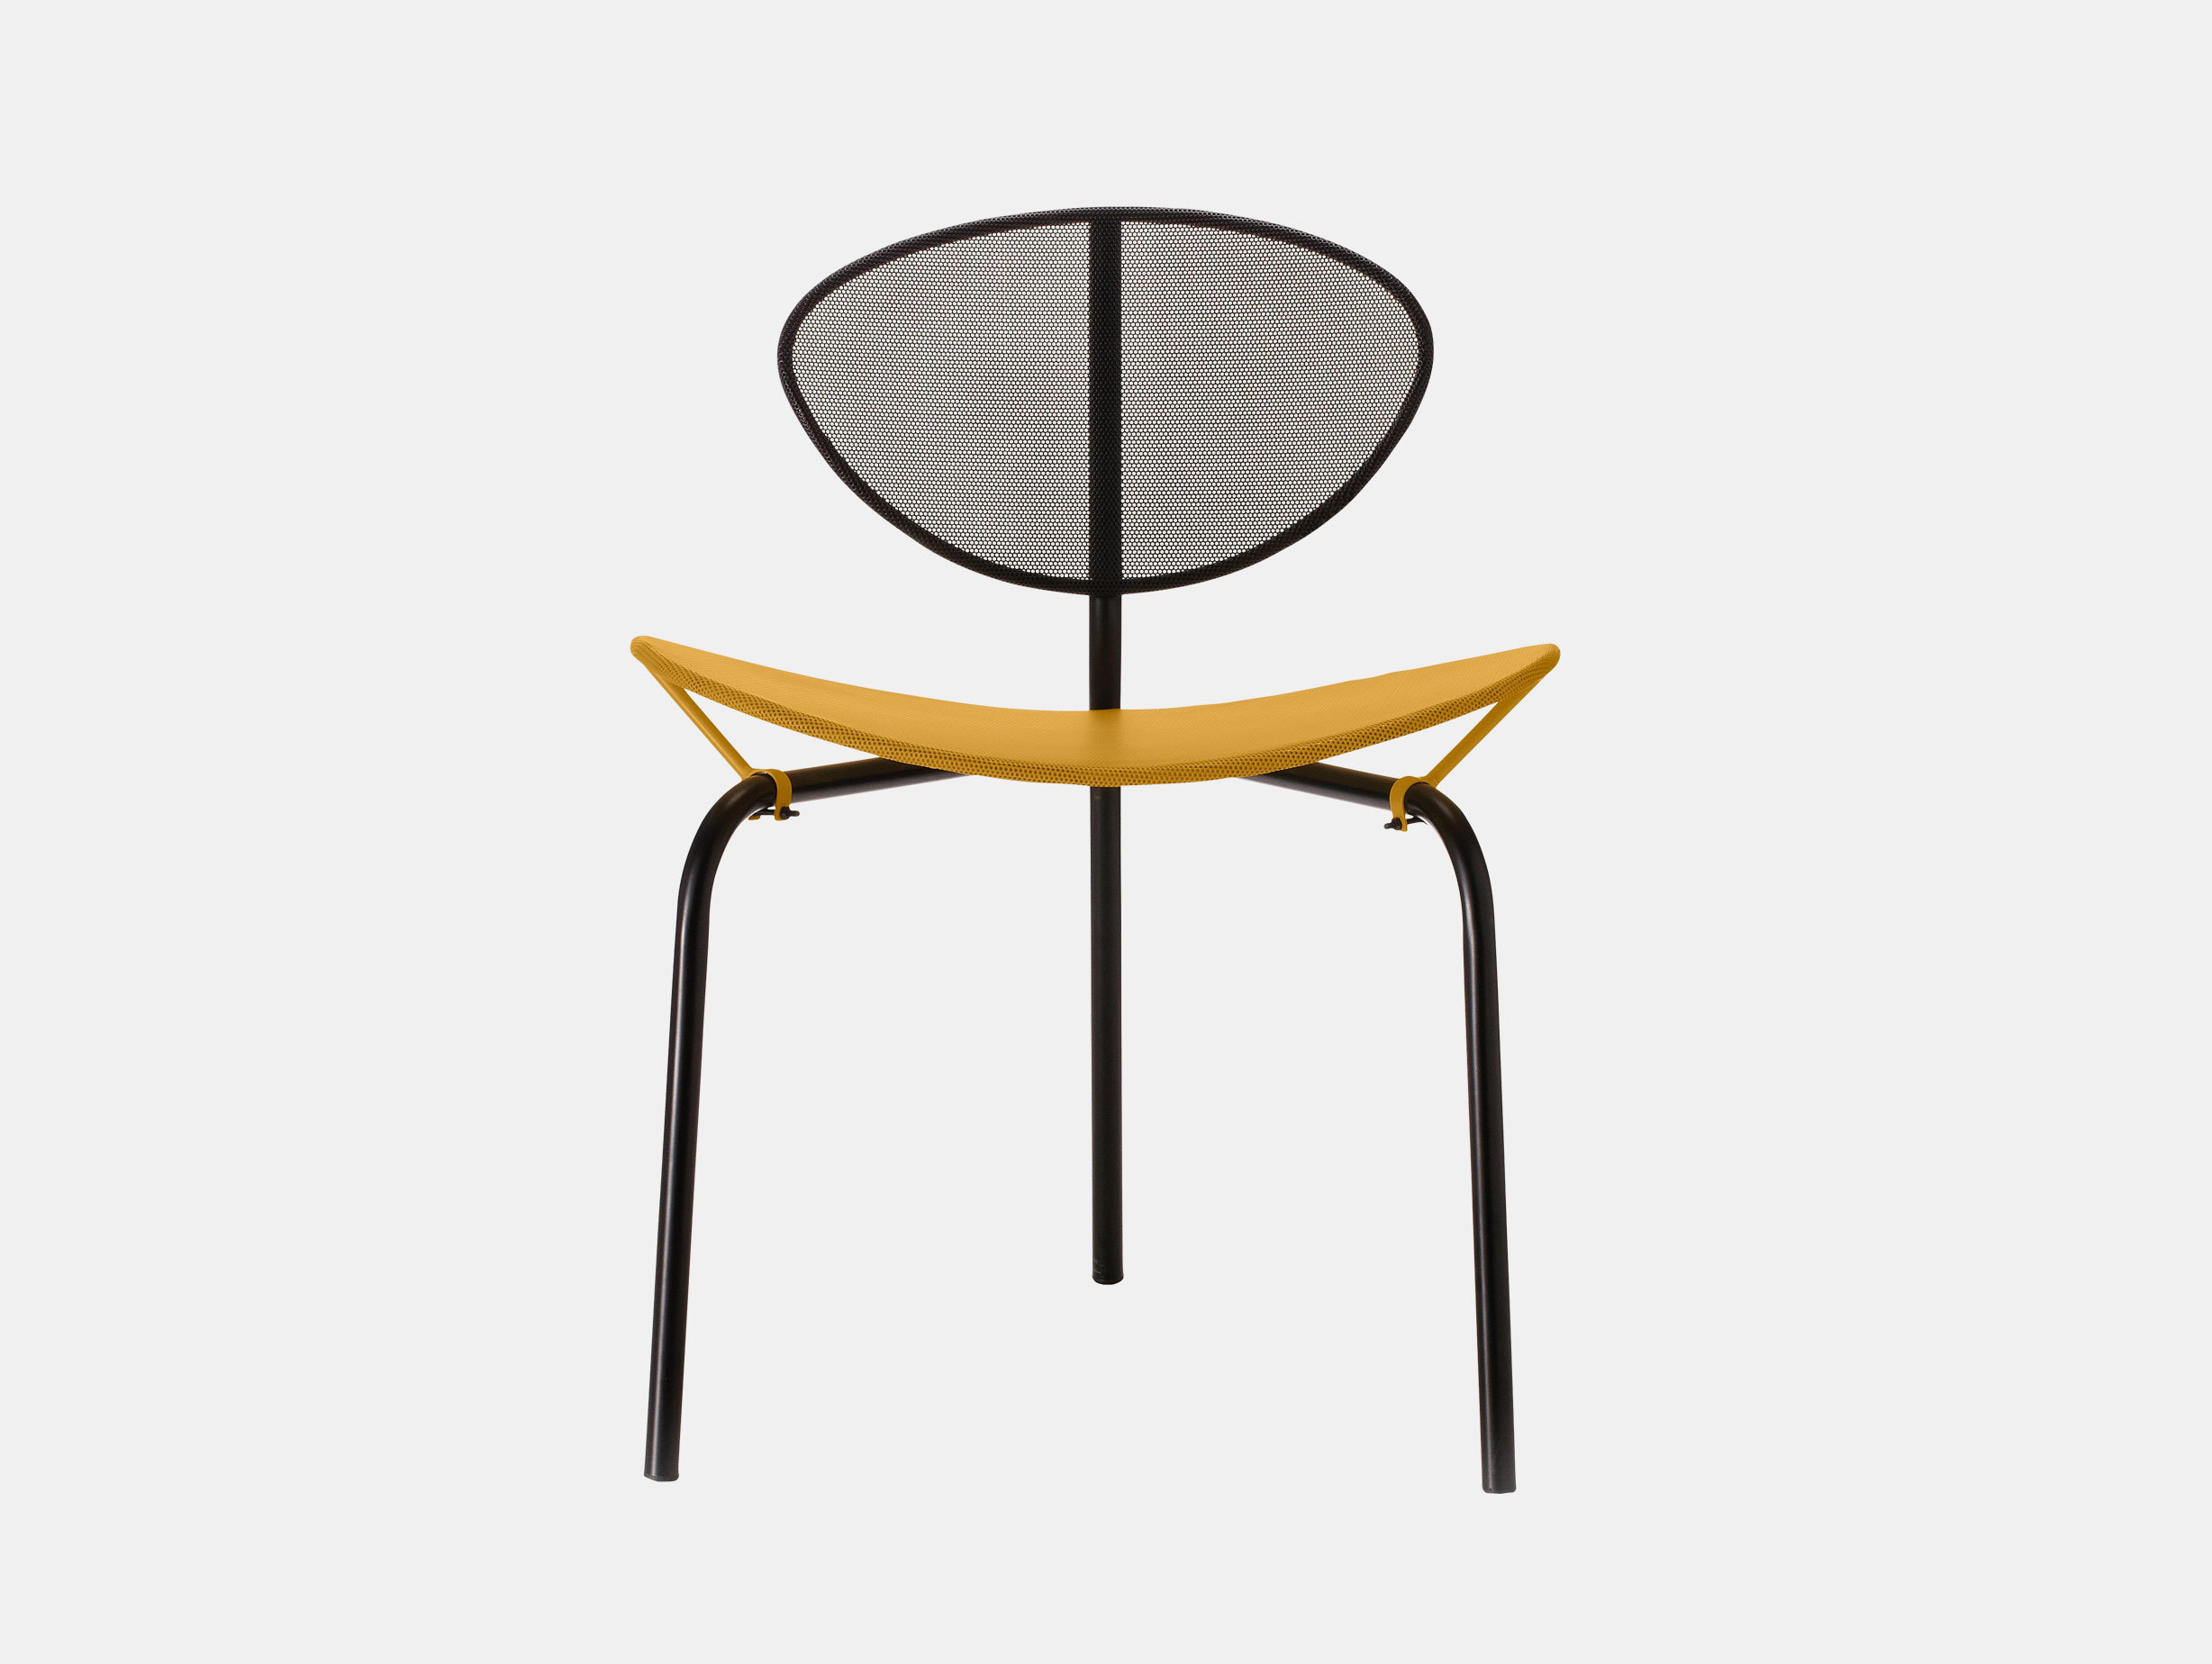 Gubi Nagasaki Dining Chair Yellow Black Mathieu Mategot